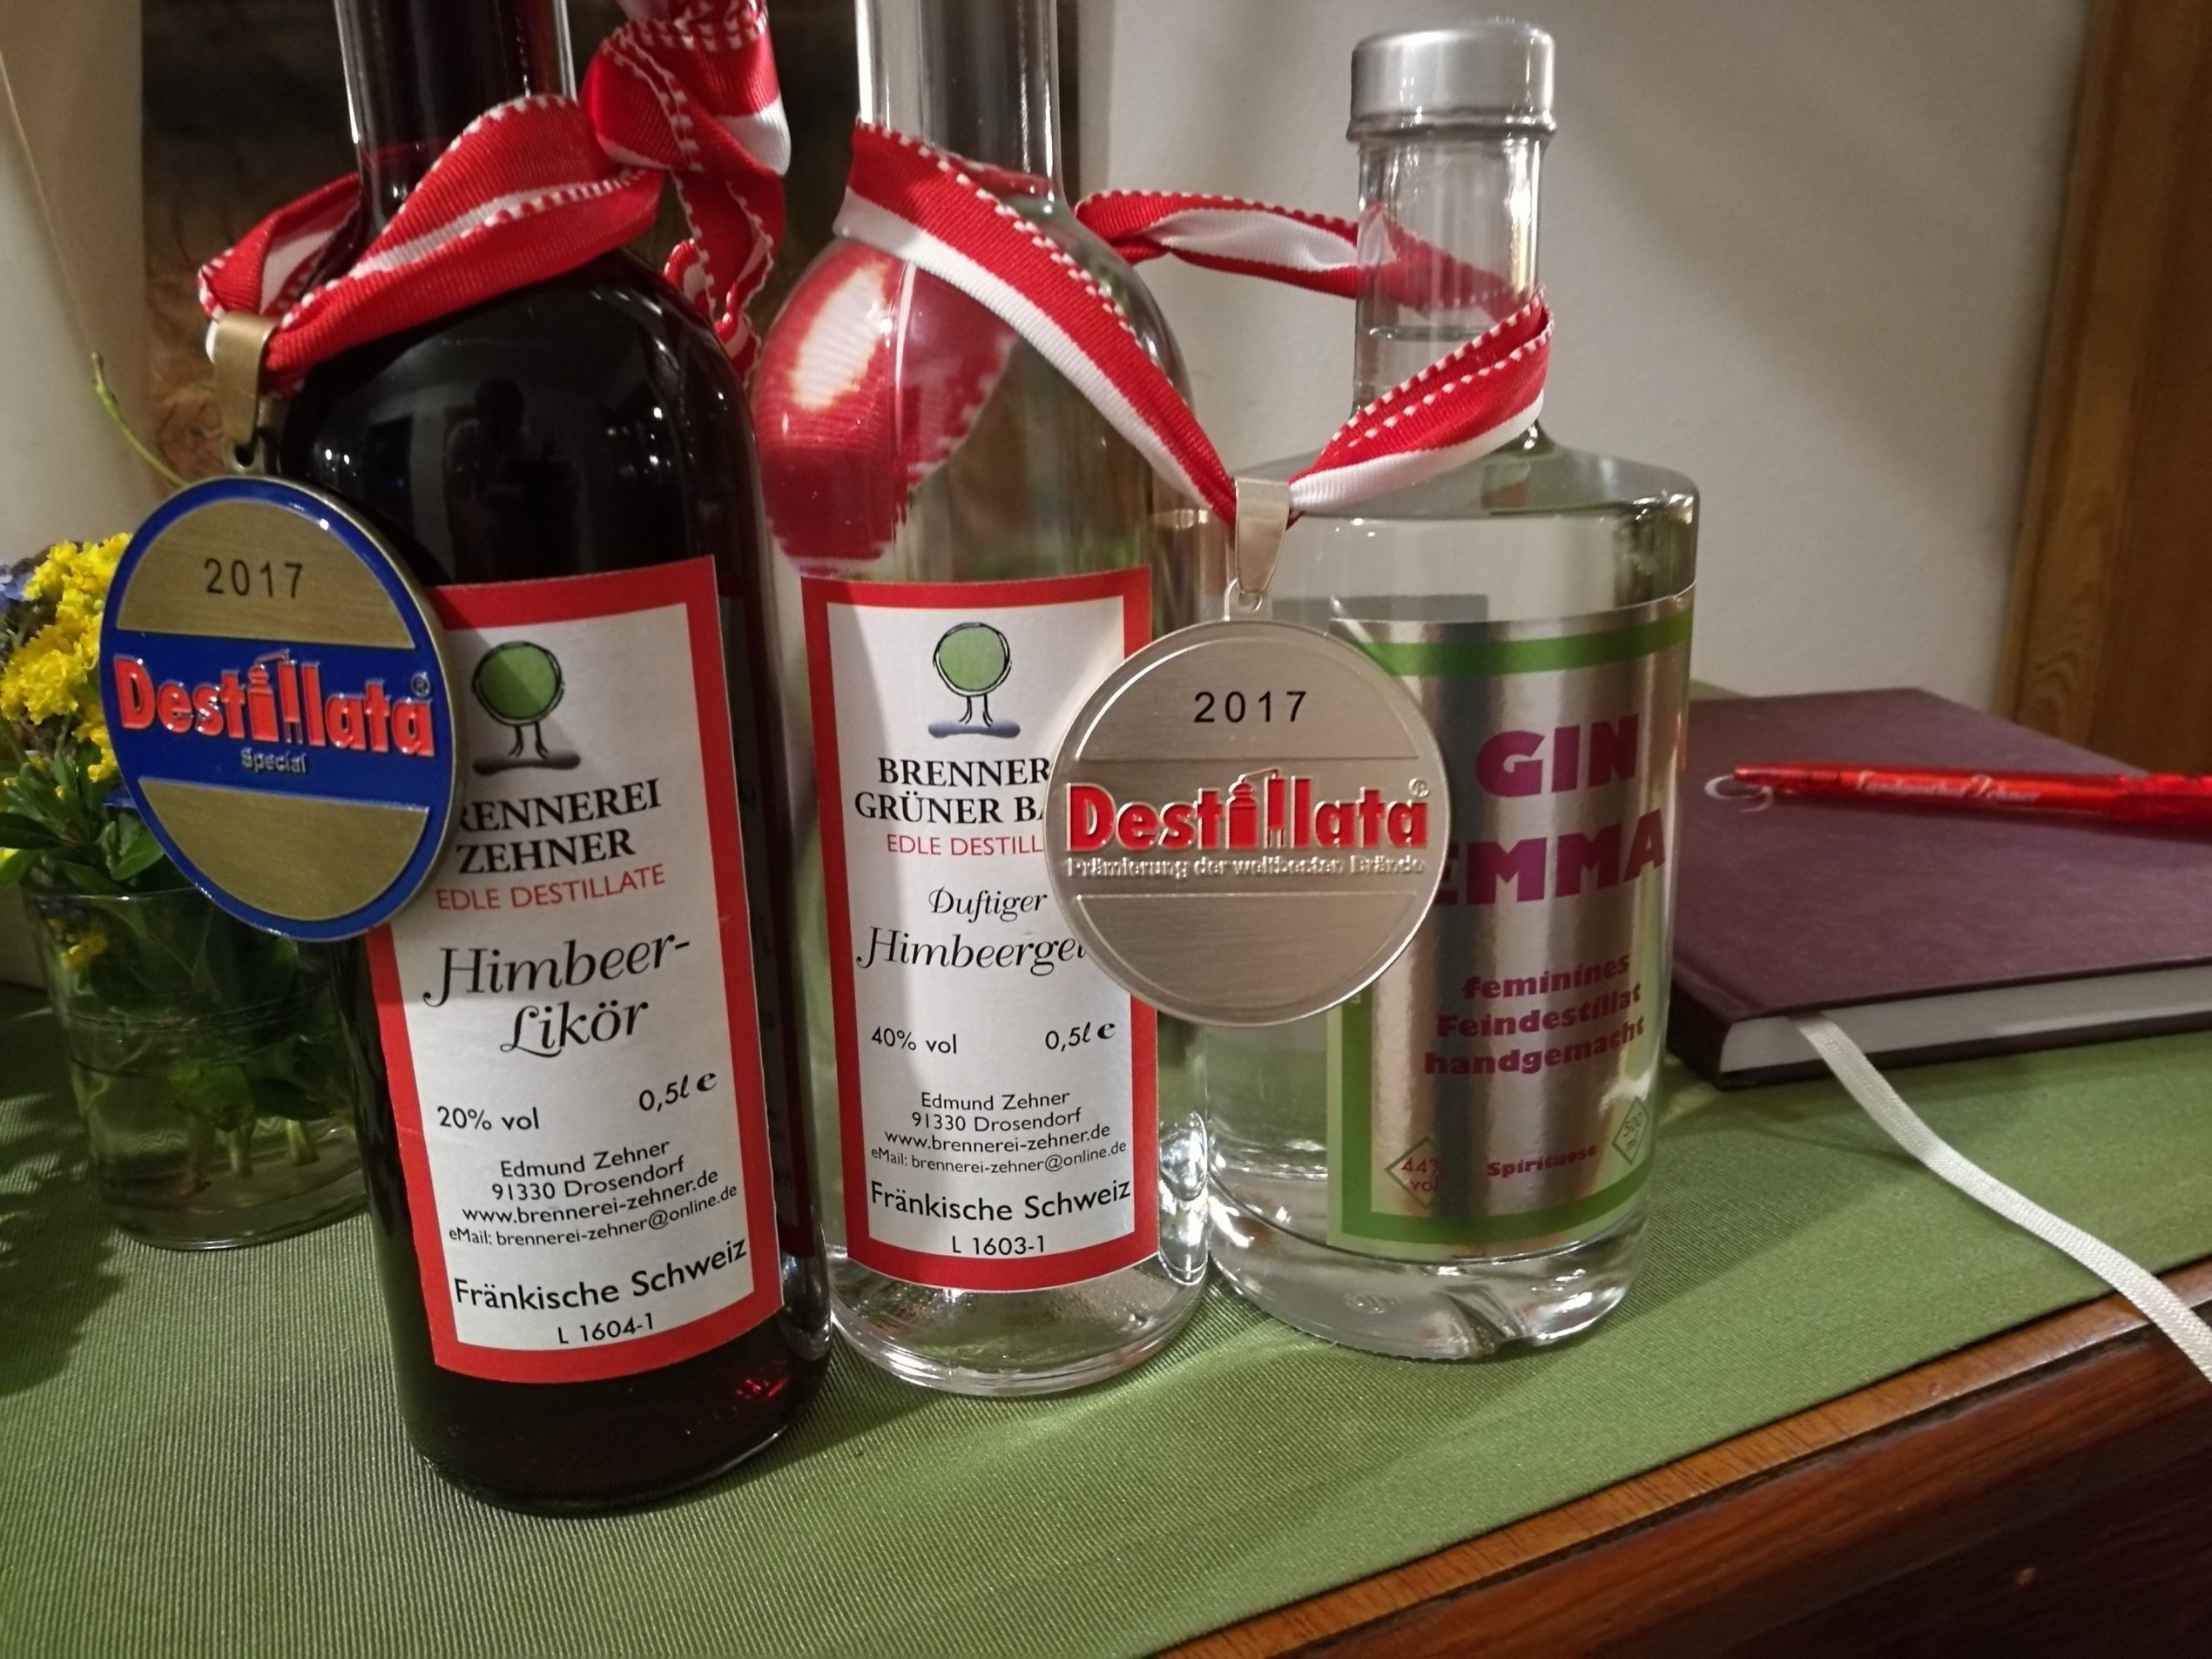 Bottles with award winners included and medals